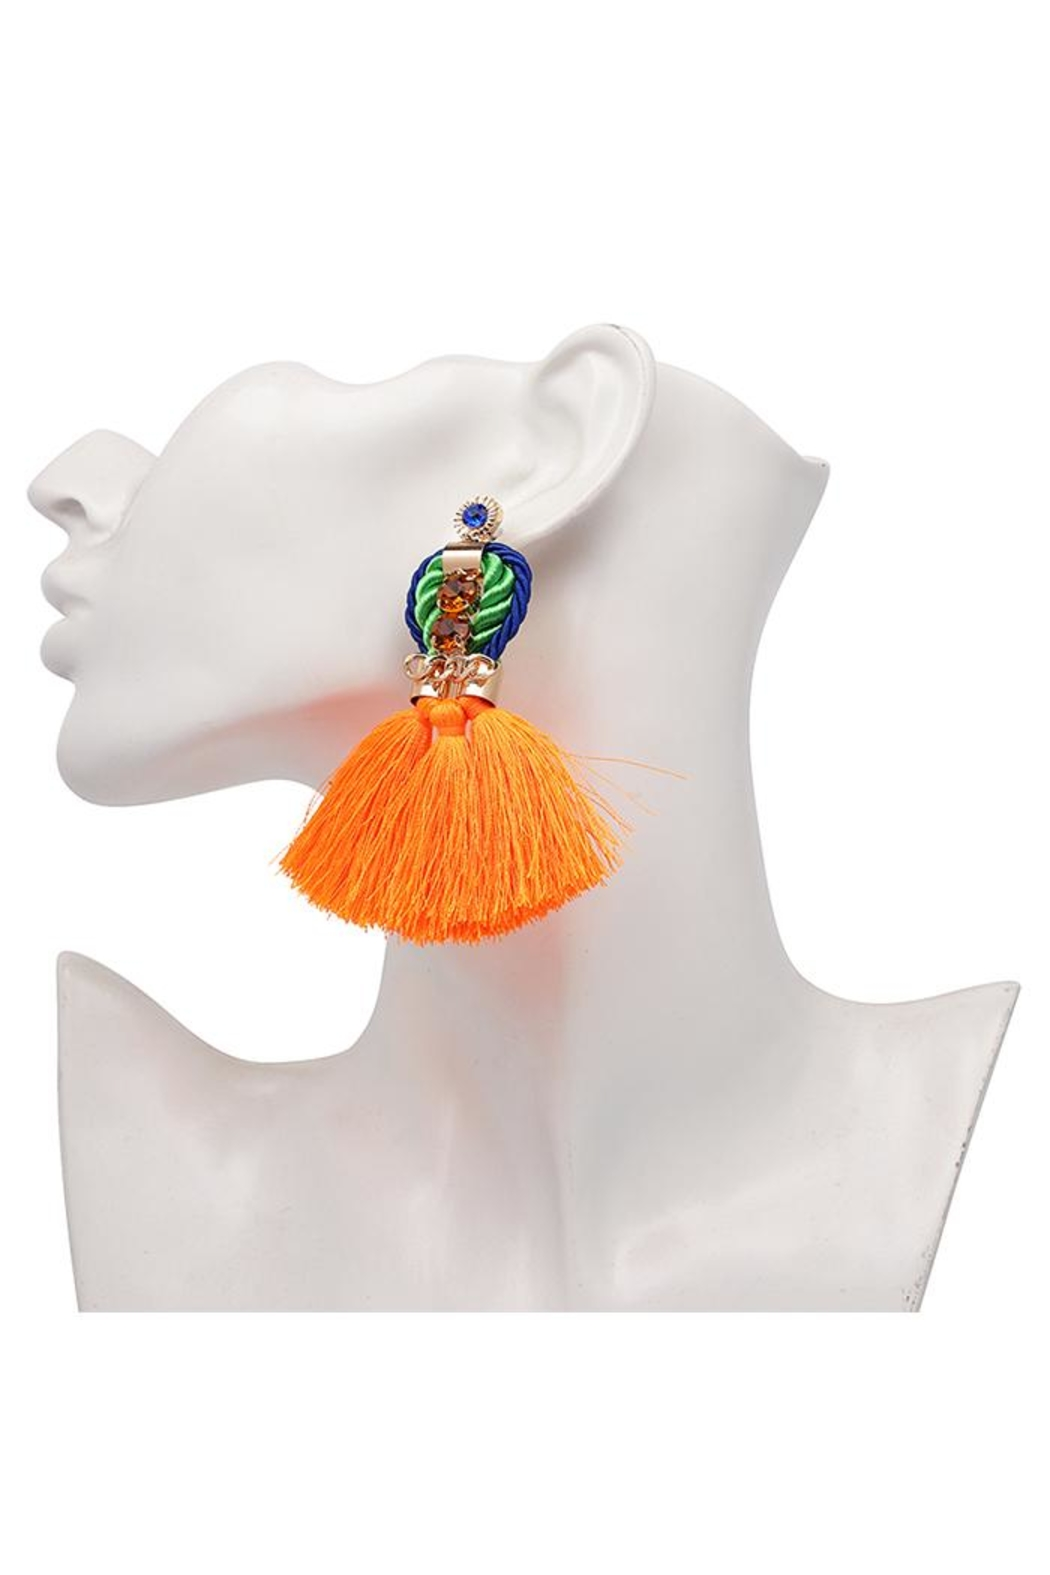 Madison Avenue Accessories Queenly Orange Earring - Front Full Image